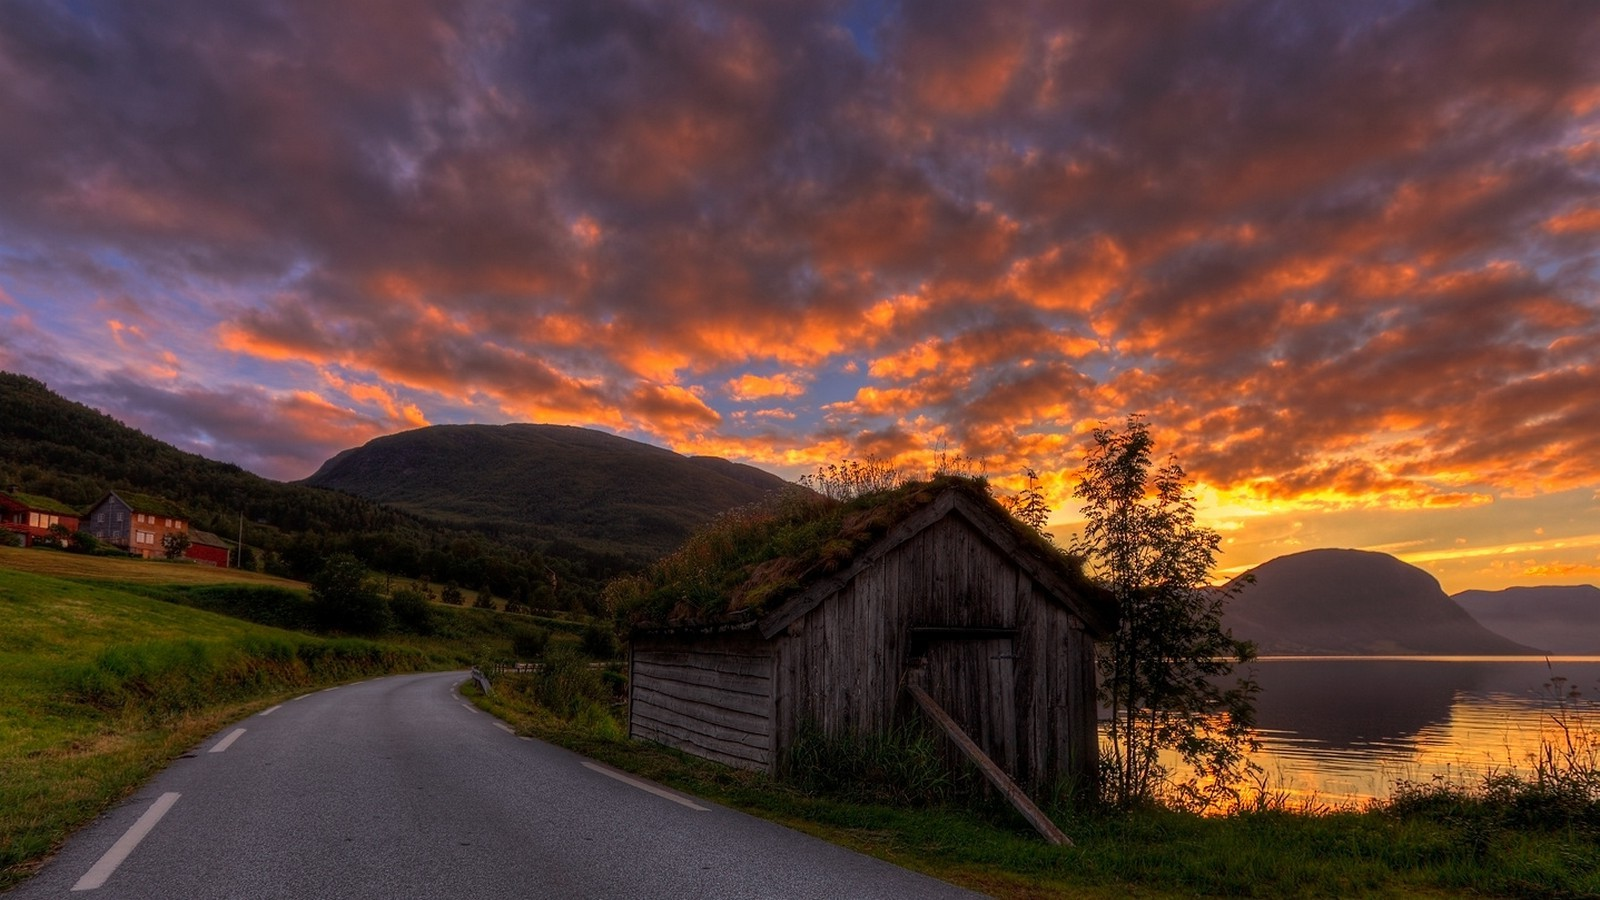 Wallpapers For Country Girls Sunrise Road Hut Sky Clouds Grass Mountain Norway